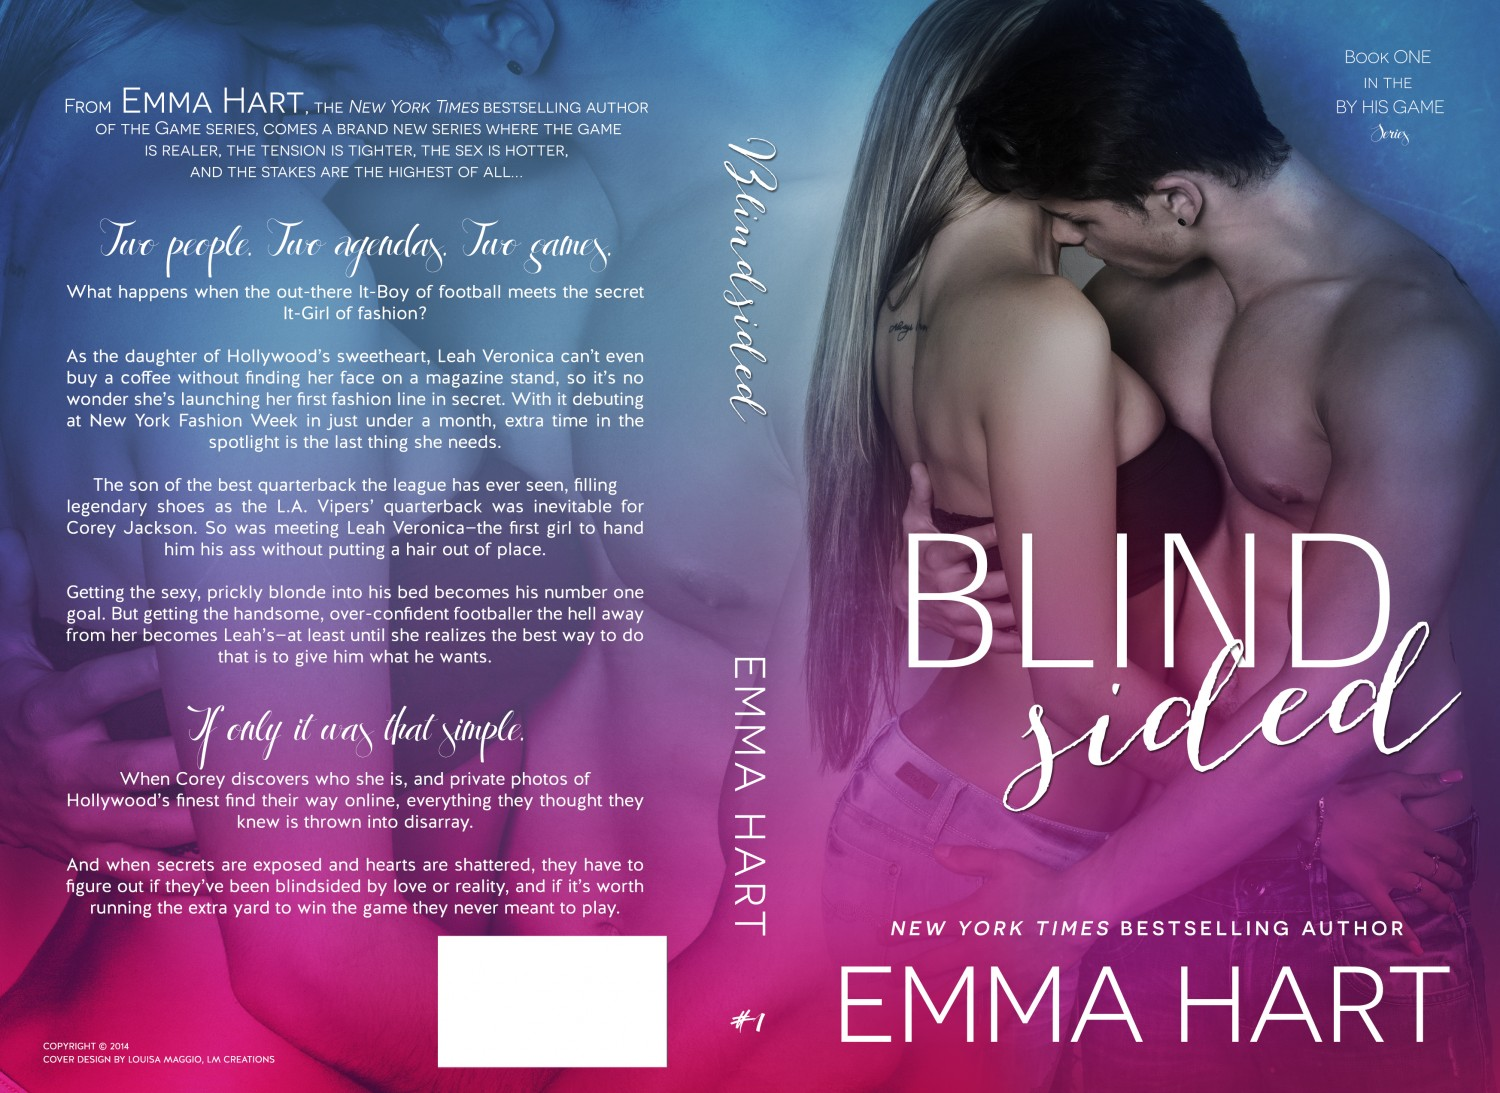 BLINDSIDED EMMA HART FULL JACKET FINAL